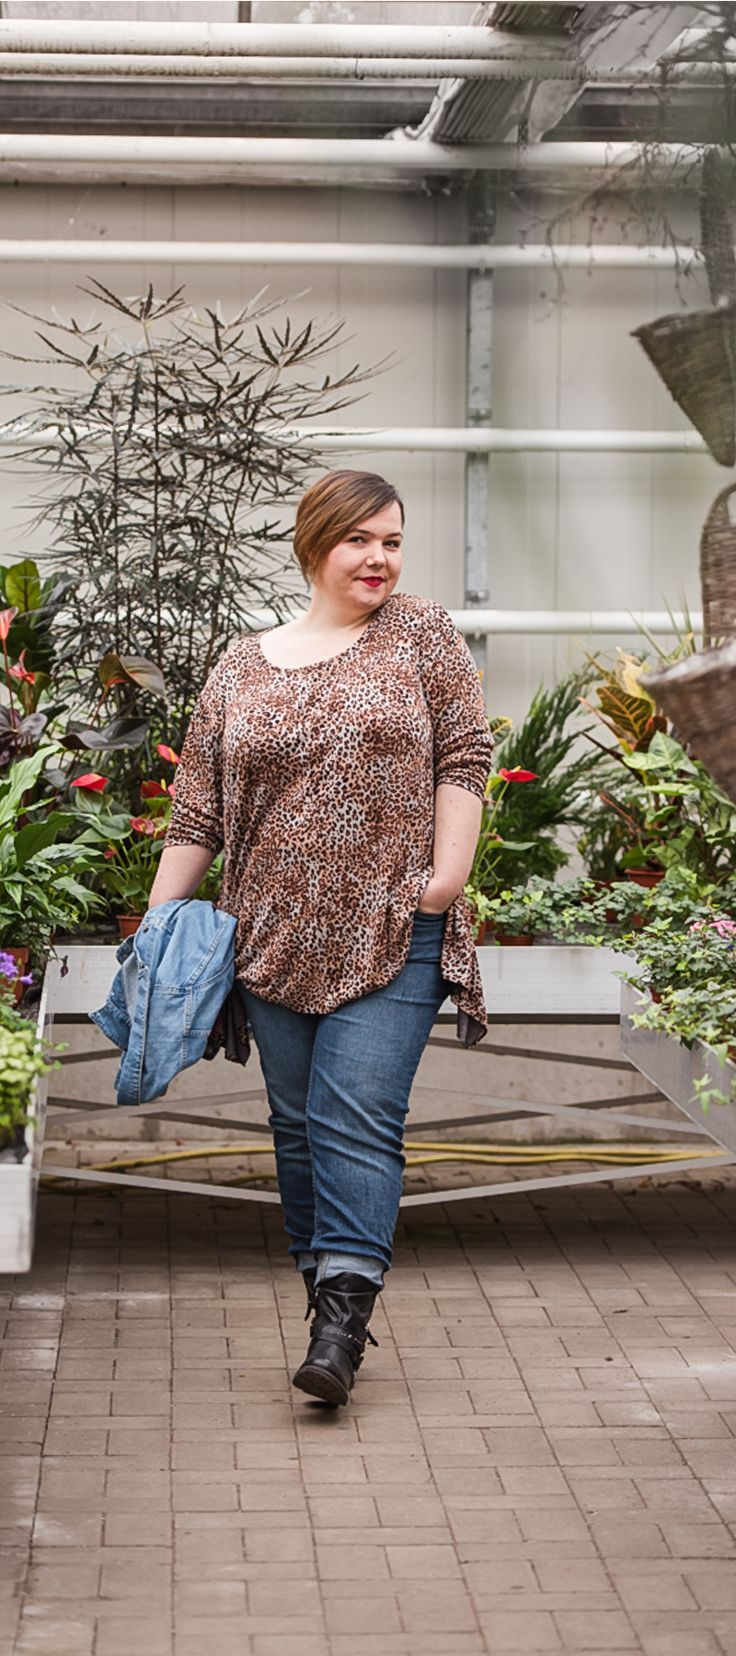 Pin auf Leoparden Muster Plus Size Mode